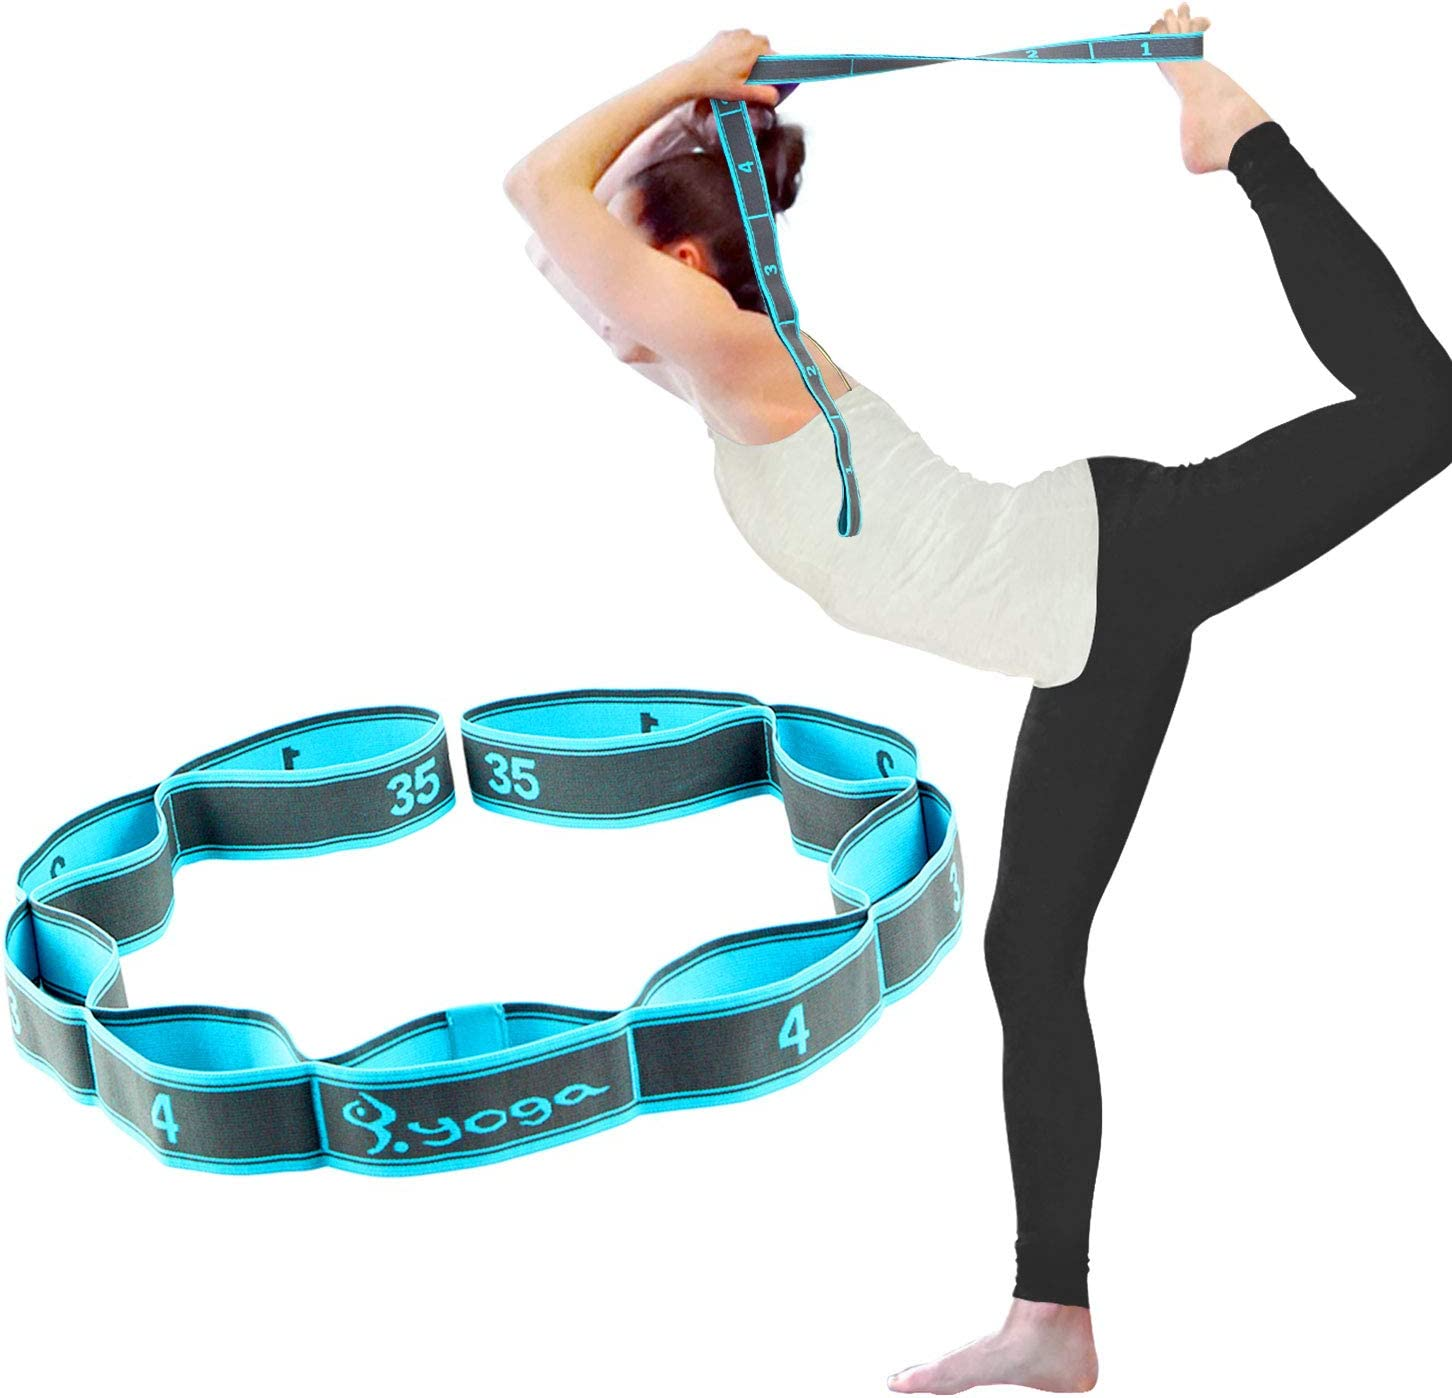 SONGSU Elastic Stretch Strap, Stretching Strap for Physical Therapy with 8 Loops, Yoga, Dance and Pilates, Gymnastics, Hamstring Strength Training